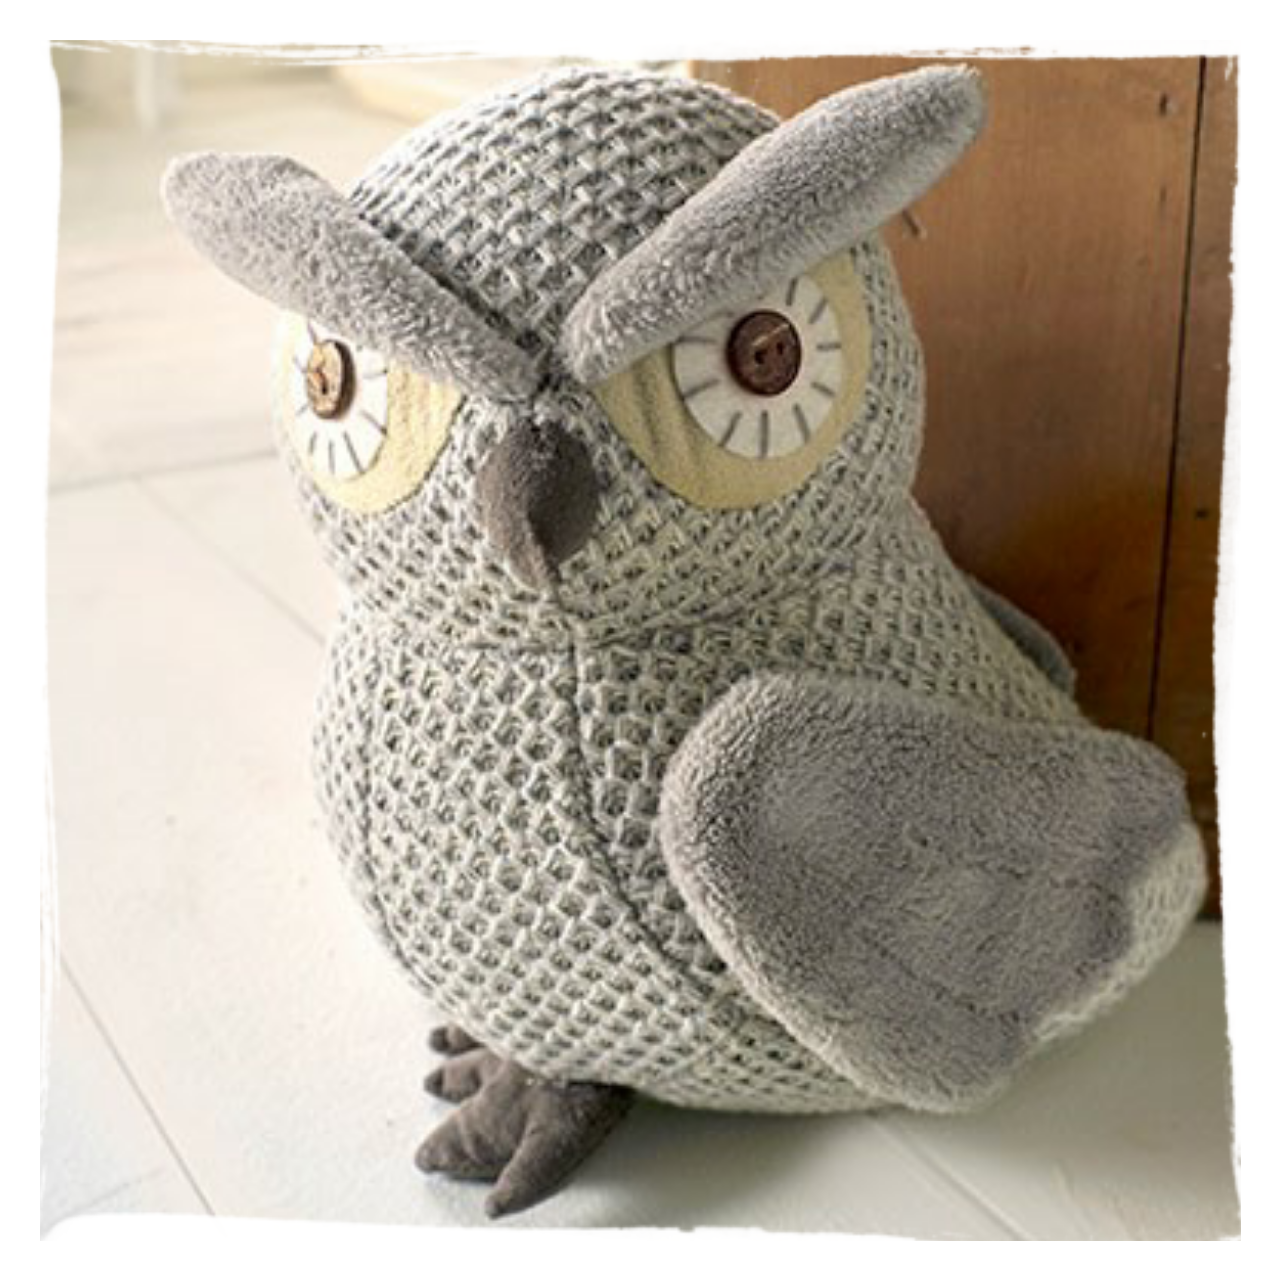 Heavy Weight Door Stop Large Owl Doorstop Large Heavy Weight Owl Doorstop In Grey Tones